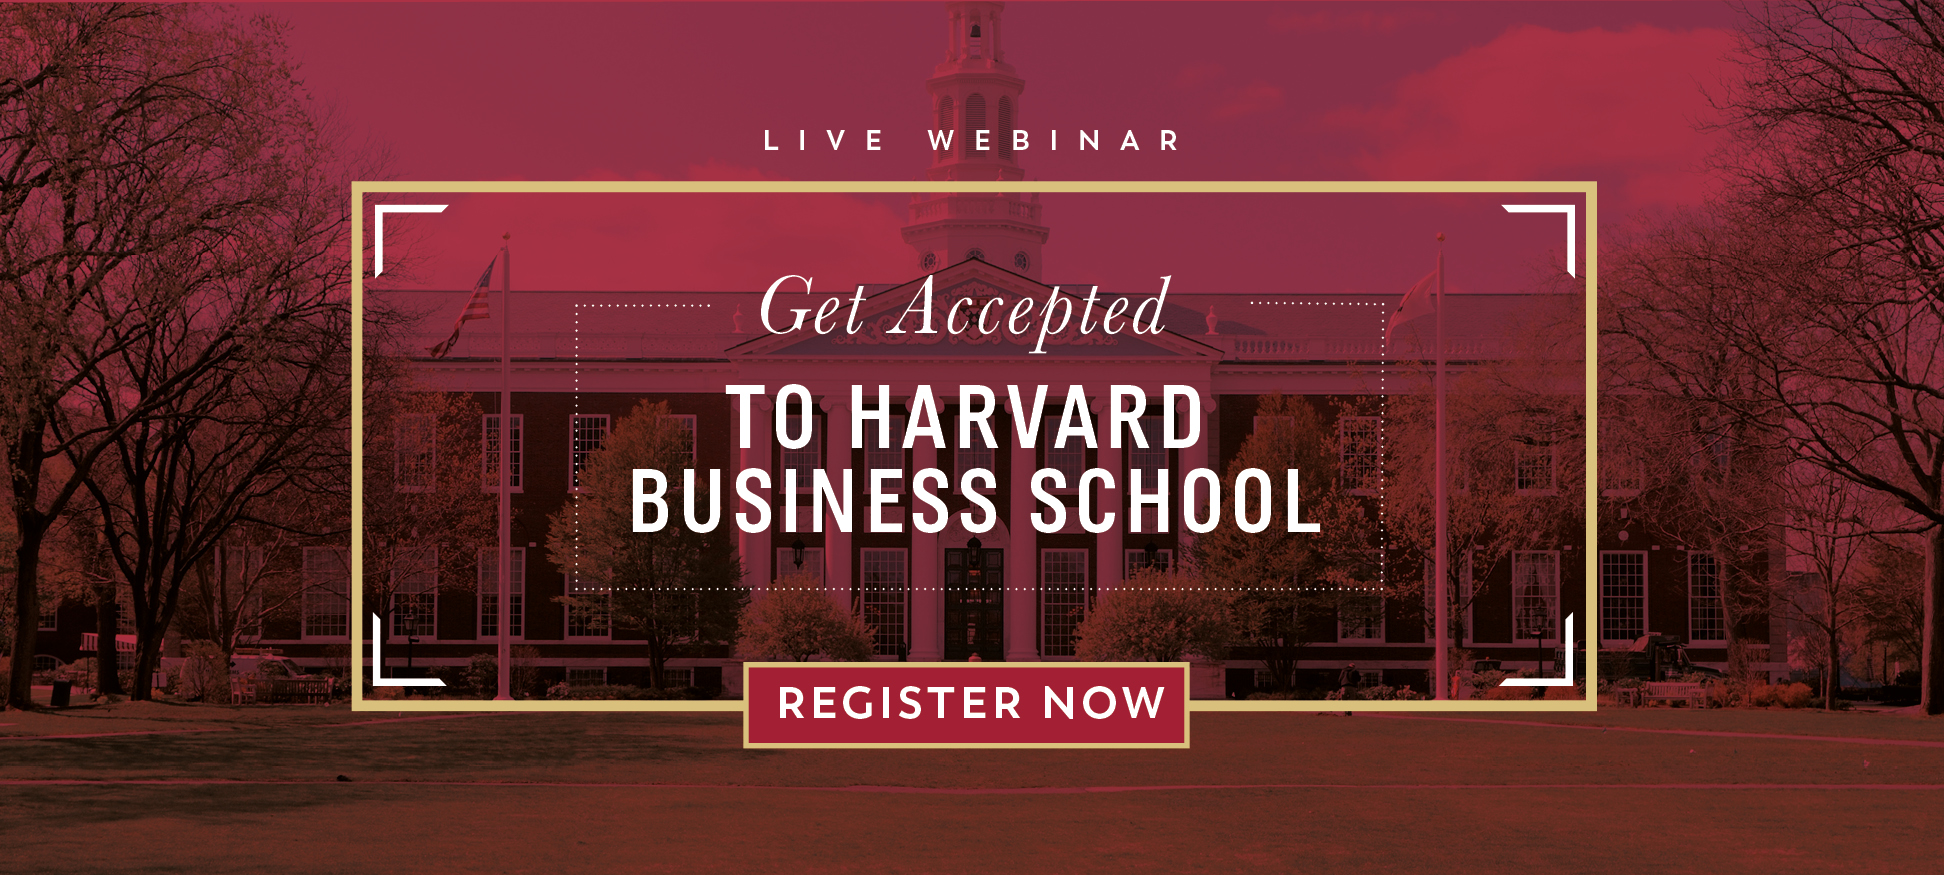 Get accepted to HBS webinar